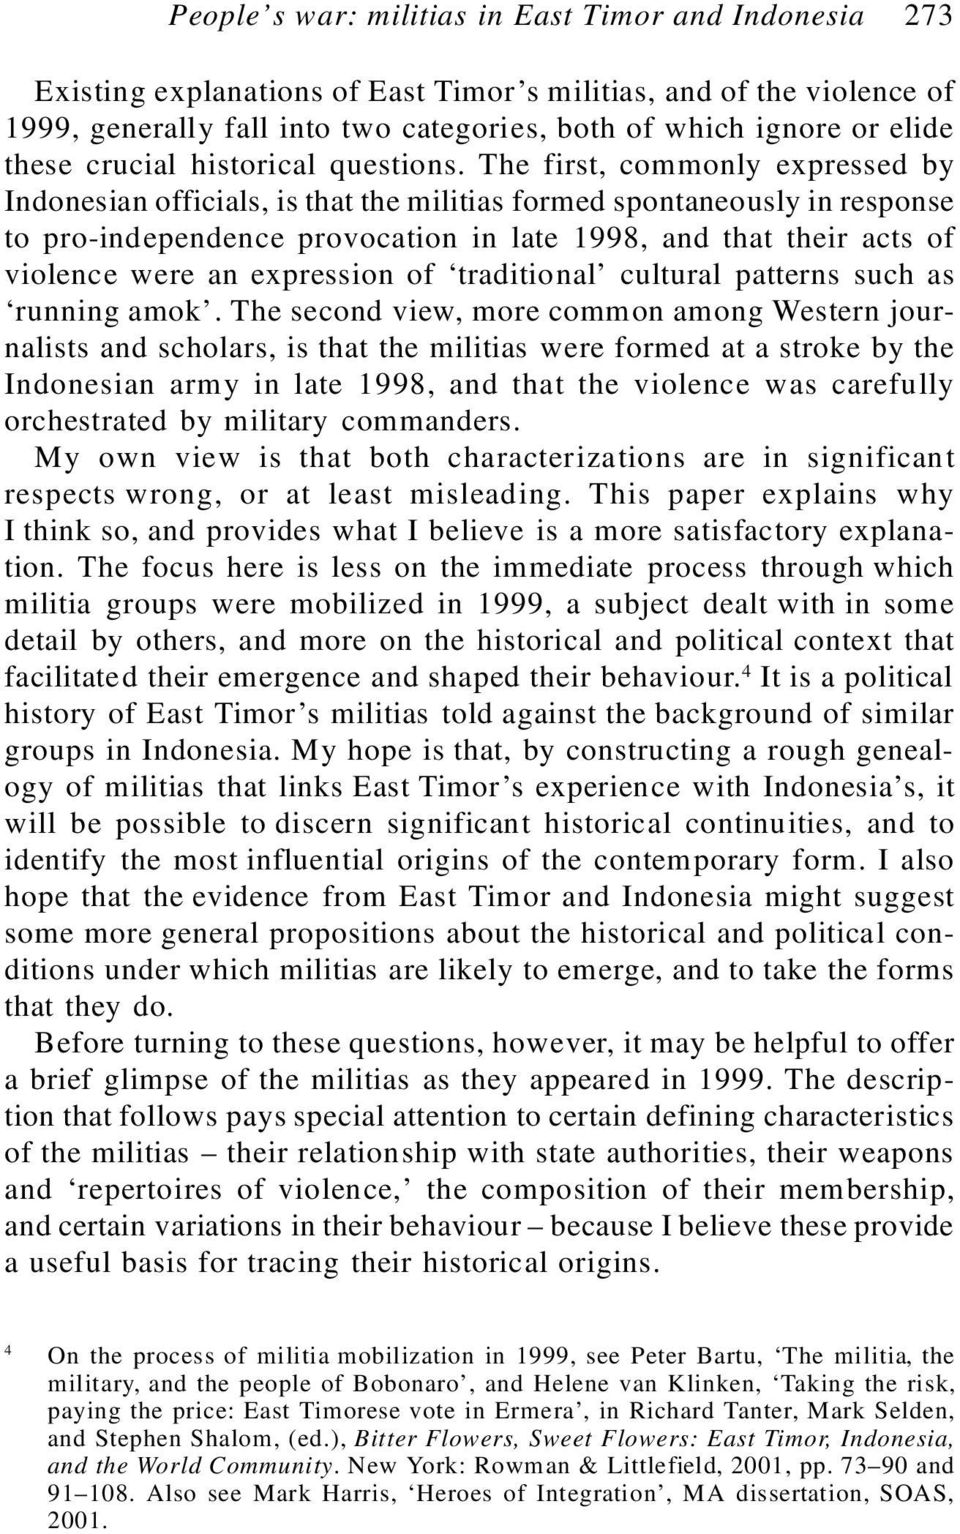 The first, commonly expressed by Indonesian officials, is that the militias formed spontaneously in response to pro-independence provocation in late 1998, and that their acts of violence were an